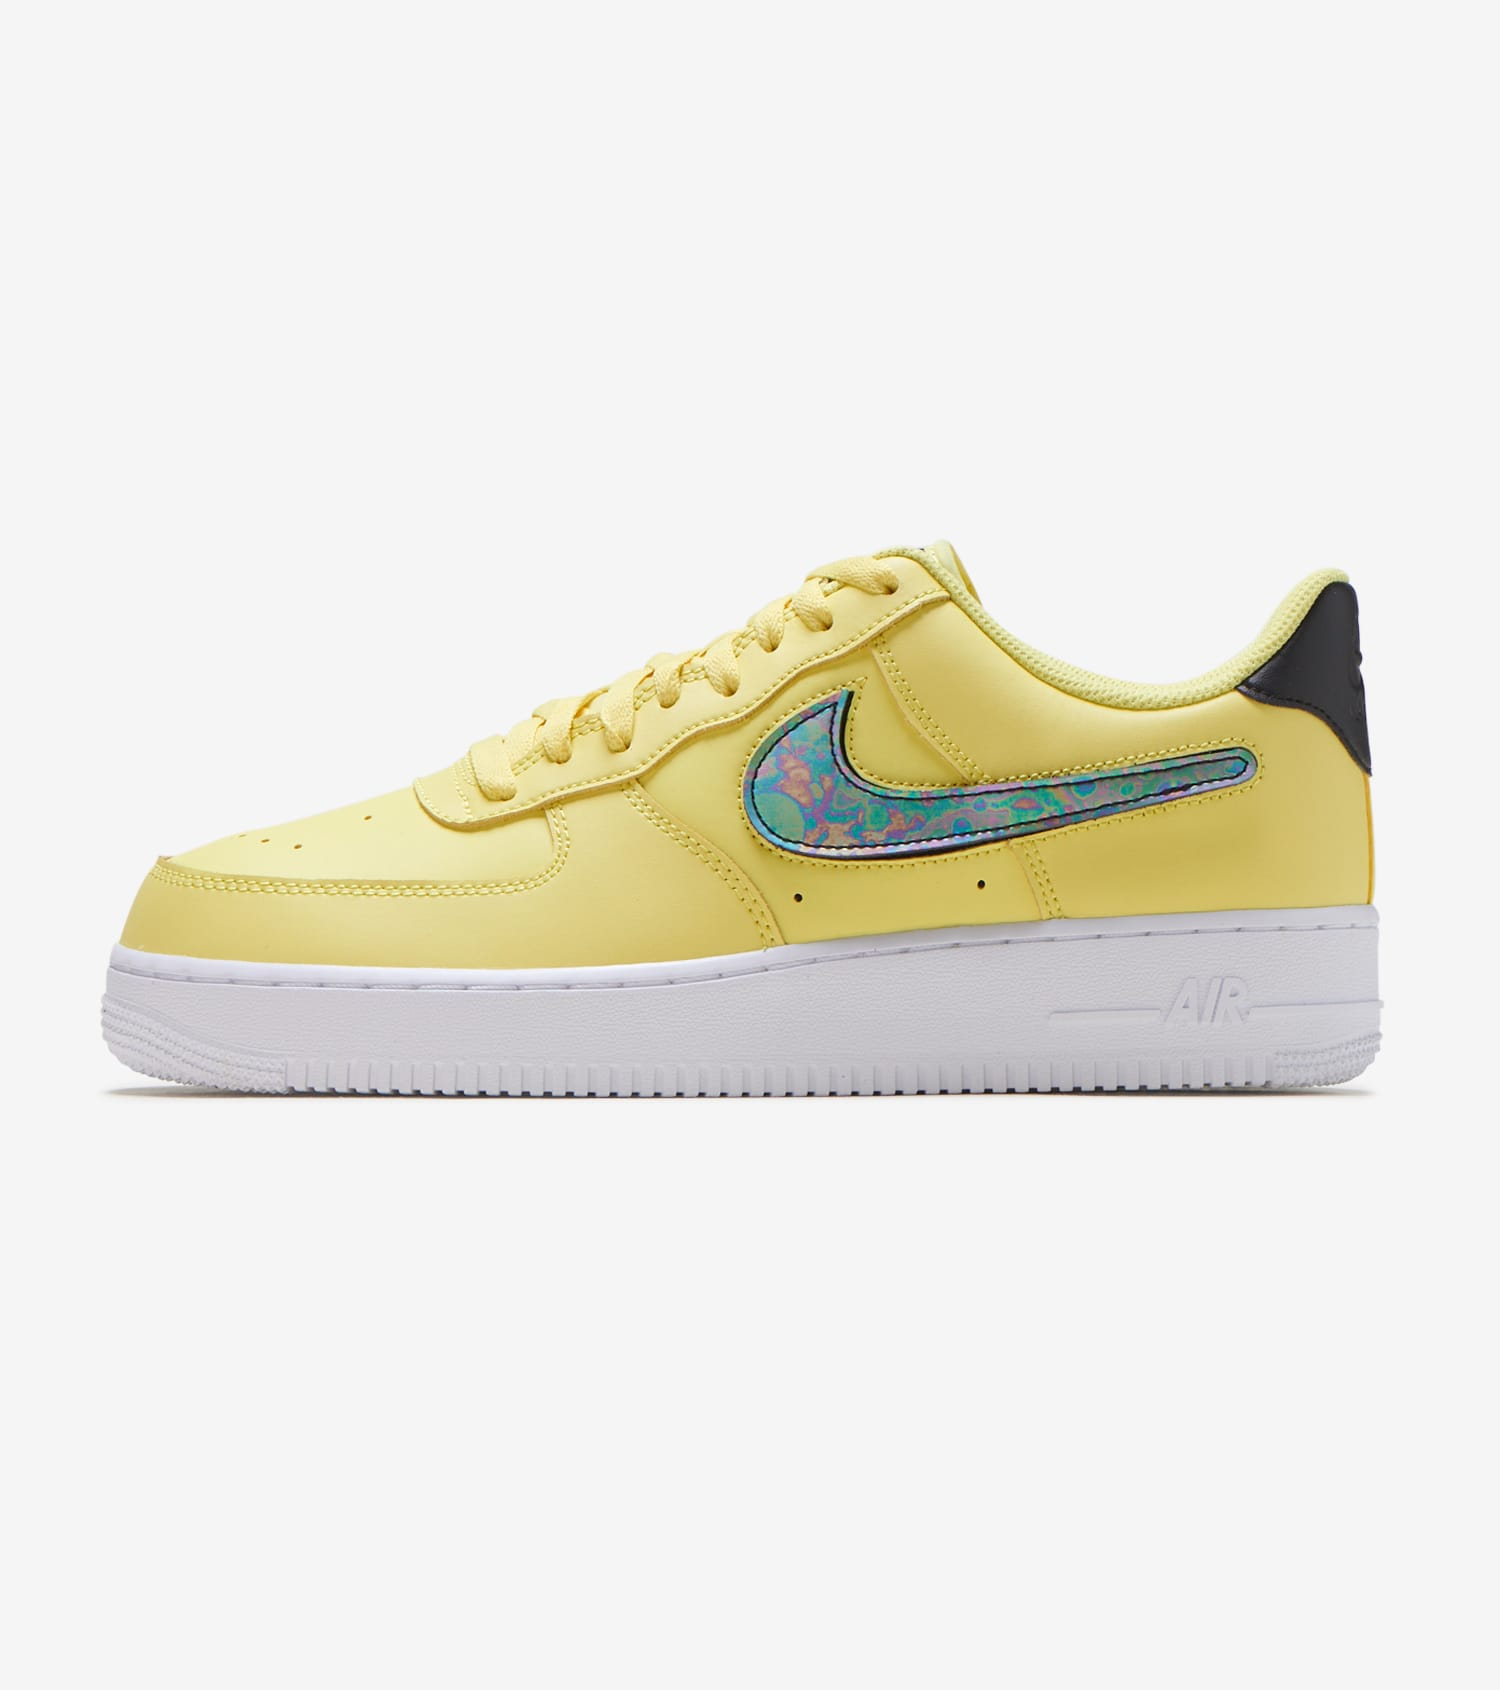 2019 Nike Air Force 1 07 LV8 YellowBlack White CI0061 700